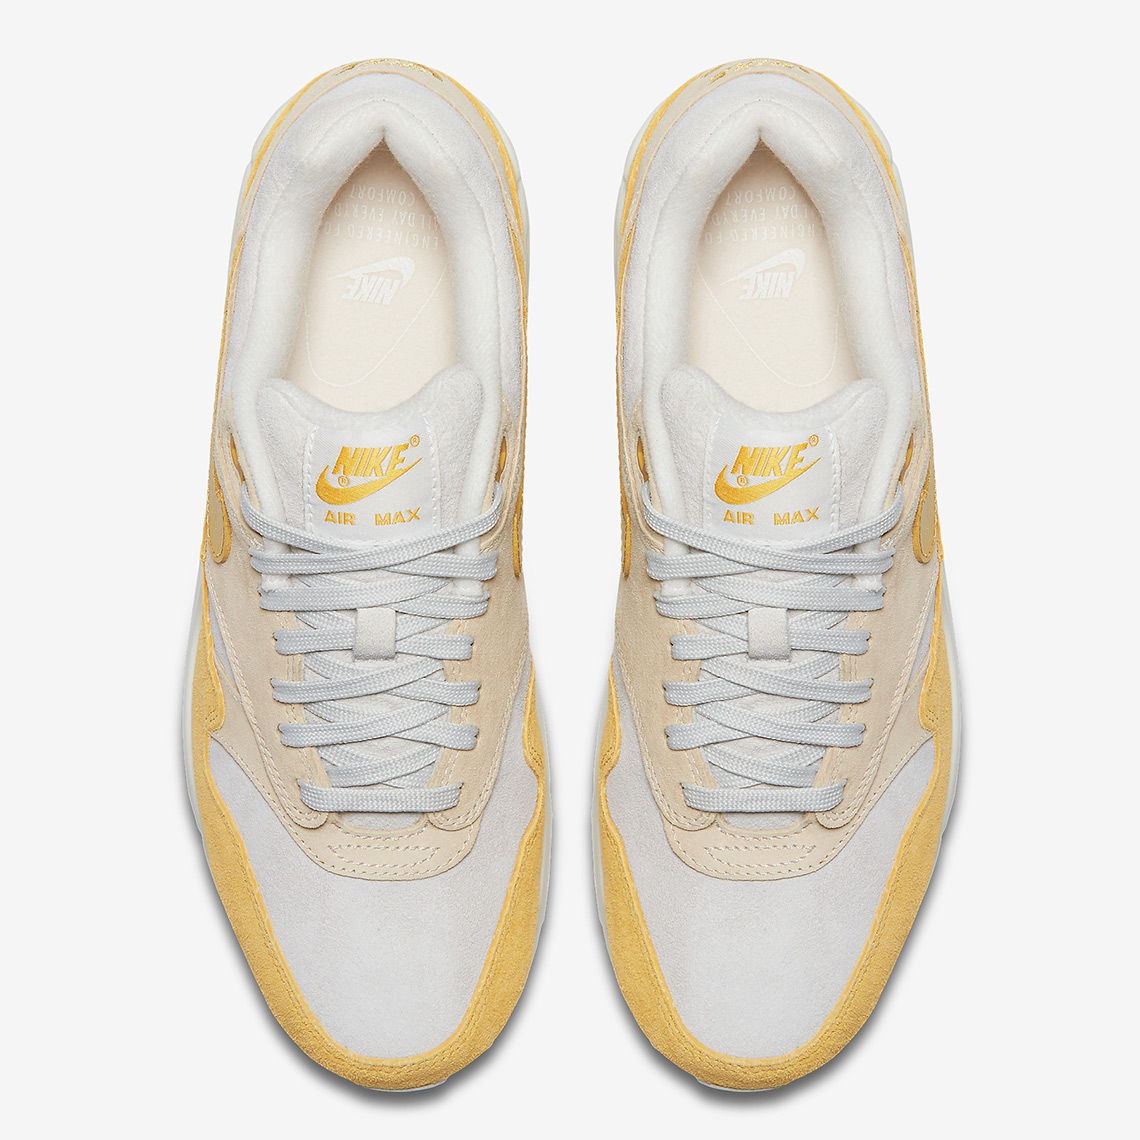 7f0b5fed94fd5 Nike Air Max 90/1 Yellow AQ1273-800 Available Now | SneakerNews.com